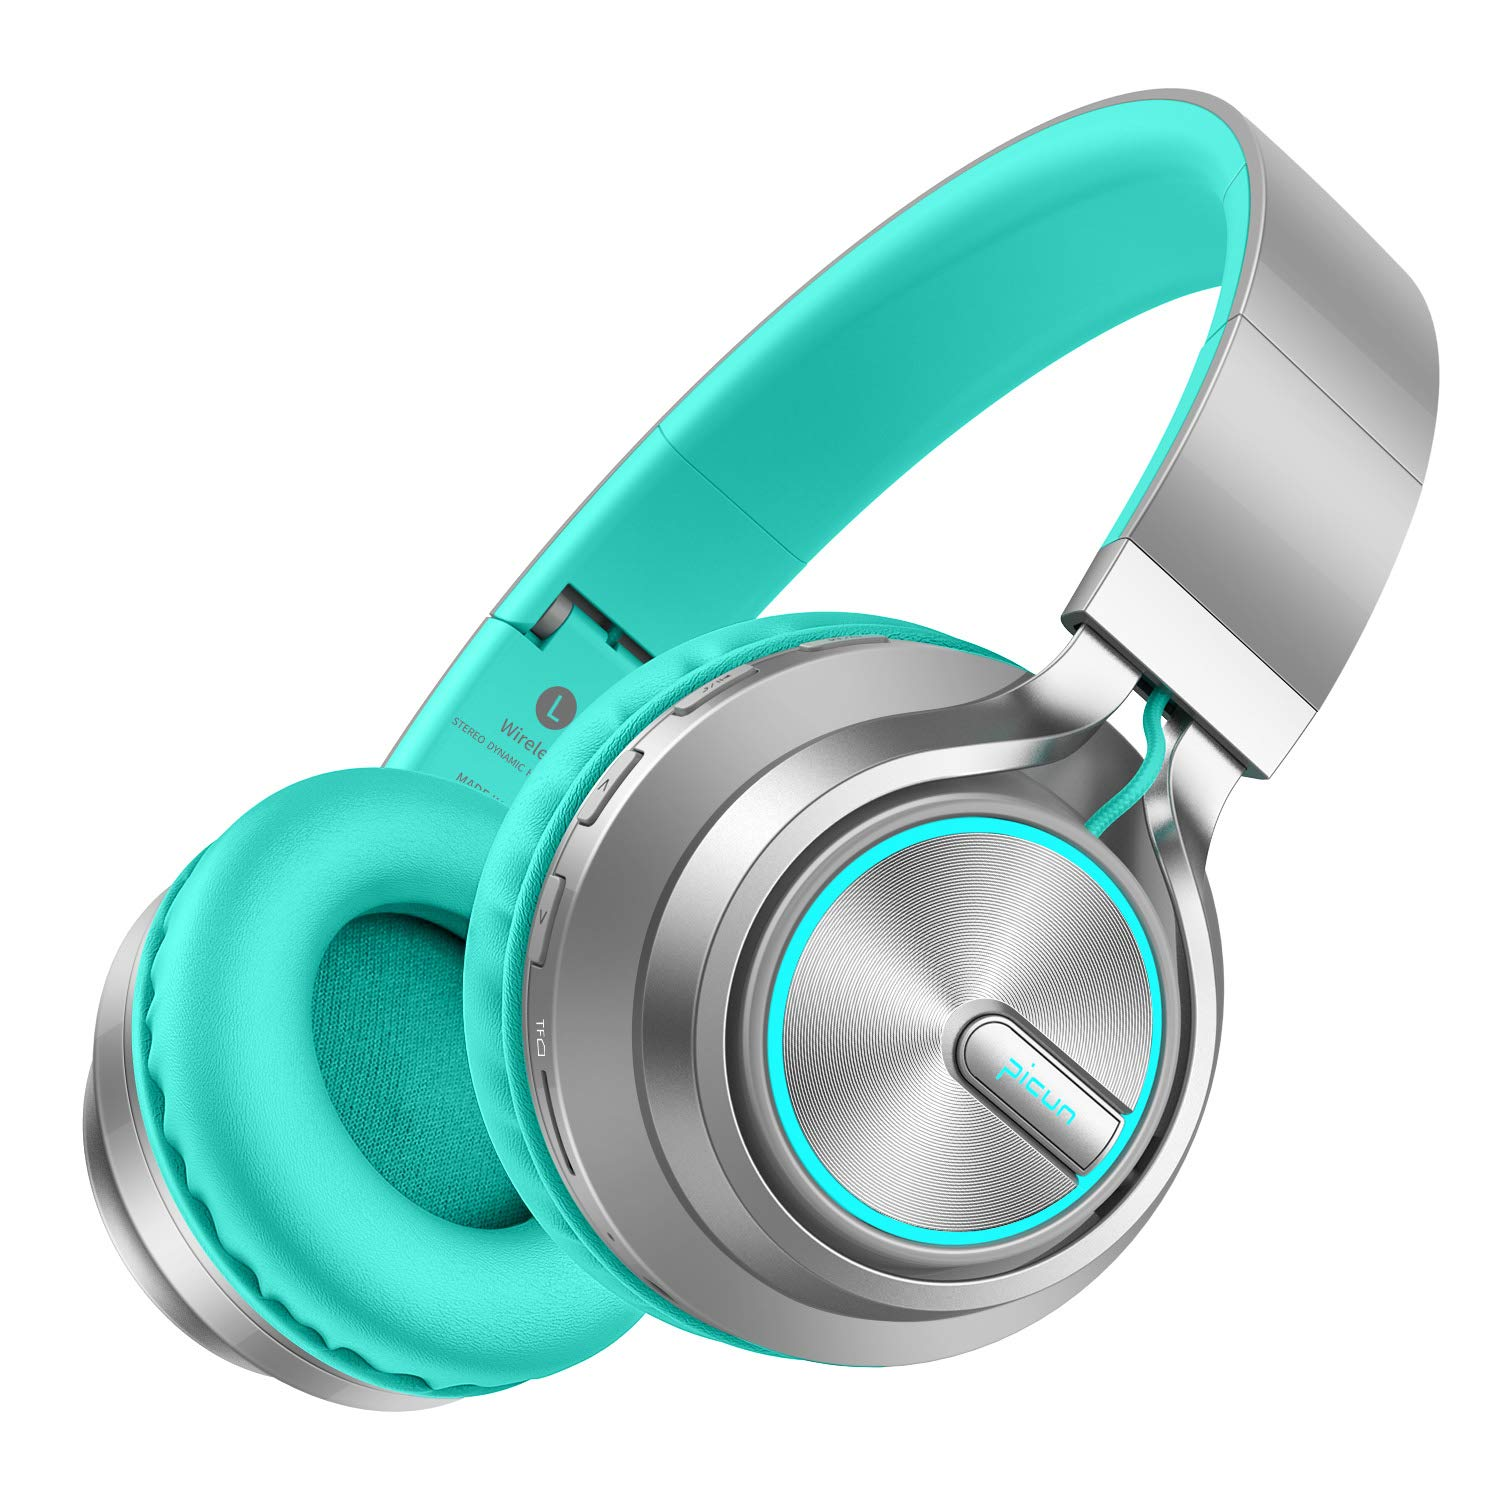 Wireless Headphones 20 Hrs w/Romantic LED Light, HiFi Stereo Picun Bluetooth 5.0 Headphones Over Ear w/Deep Bass/HD Mic/Bag, Protein Earpads, Foldable, TF Card/Wired Mode for PC Cellphone (Grey/Mint)